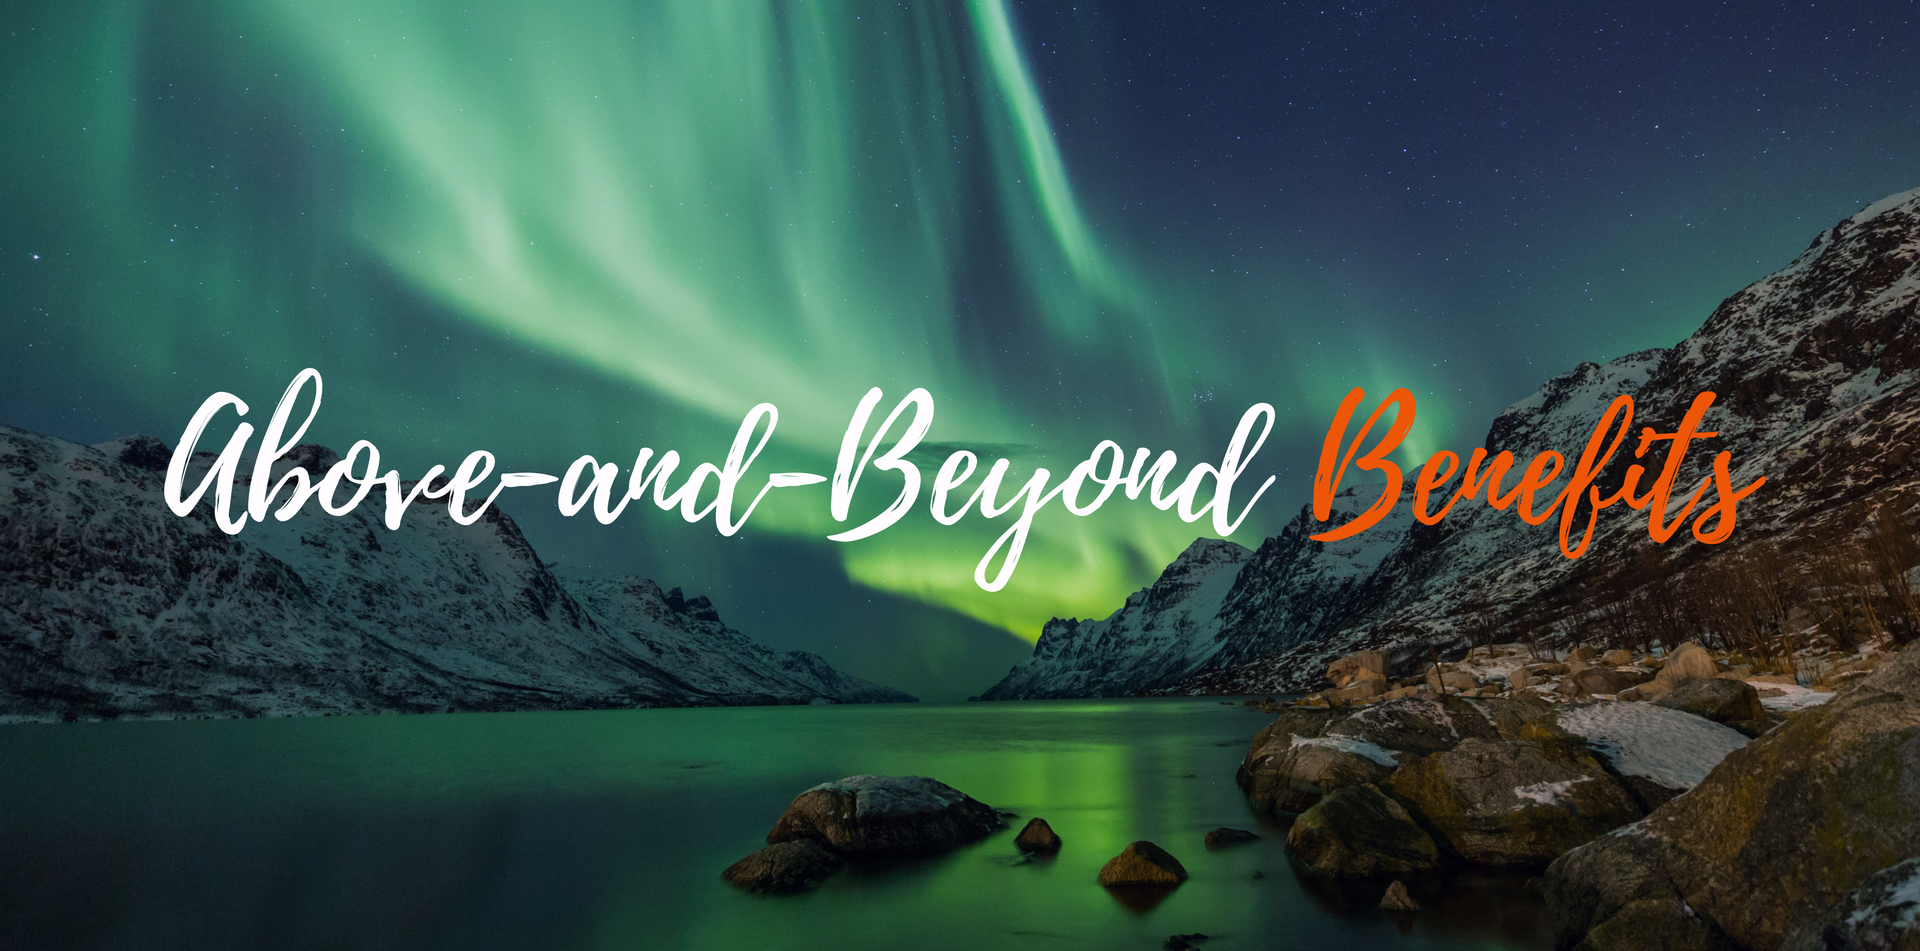 Europe Iceland Northern Lights Aurora Borealis over water mountains above and beyond benefits - luxury vacation destinations